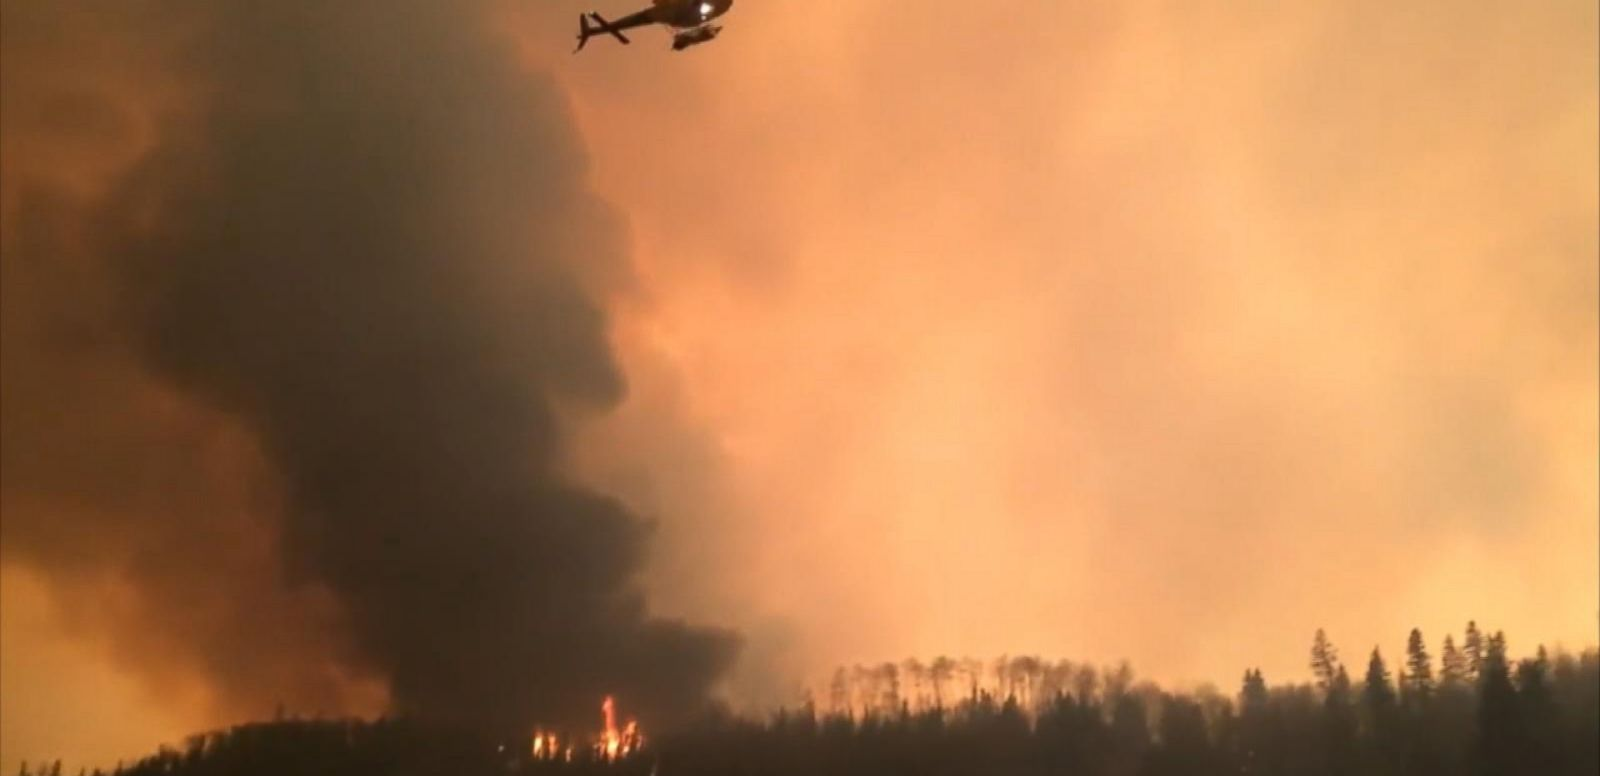 VIDEO: Wildfires Rage in Fort McMurray, Alberta, in Canada